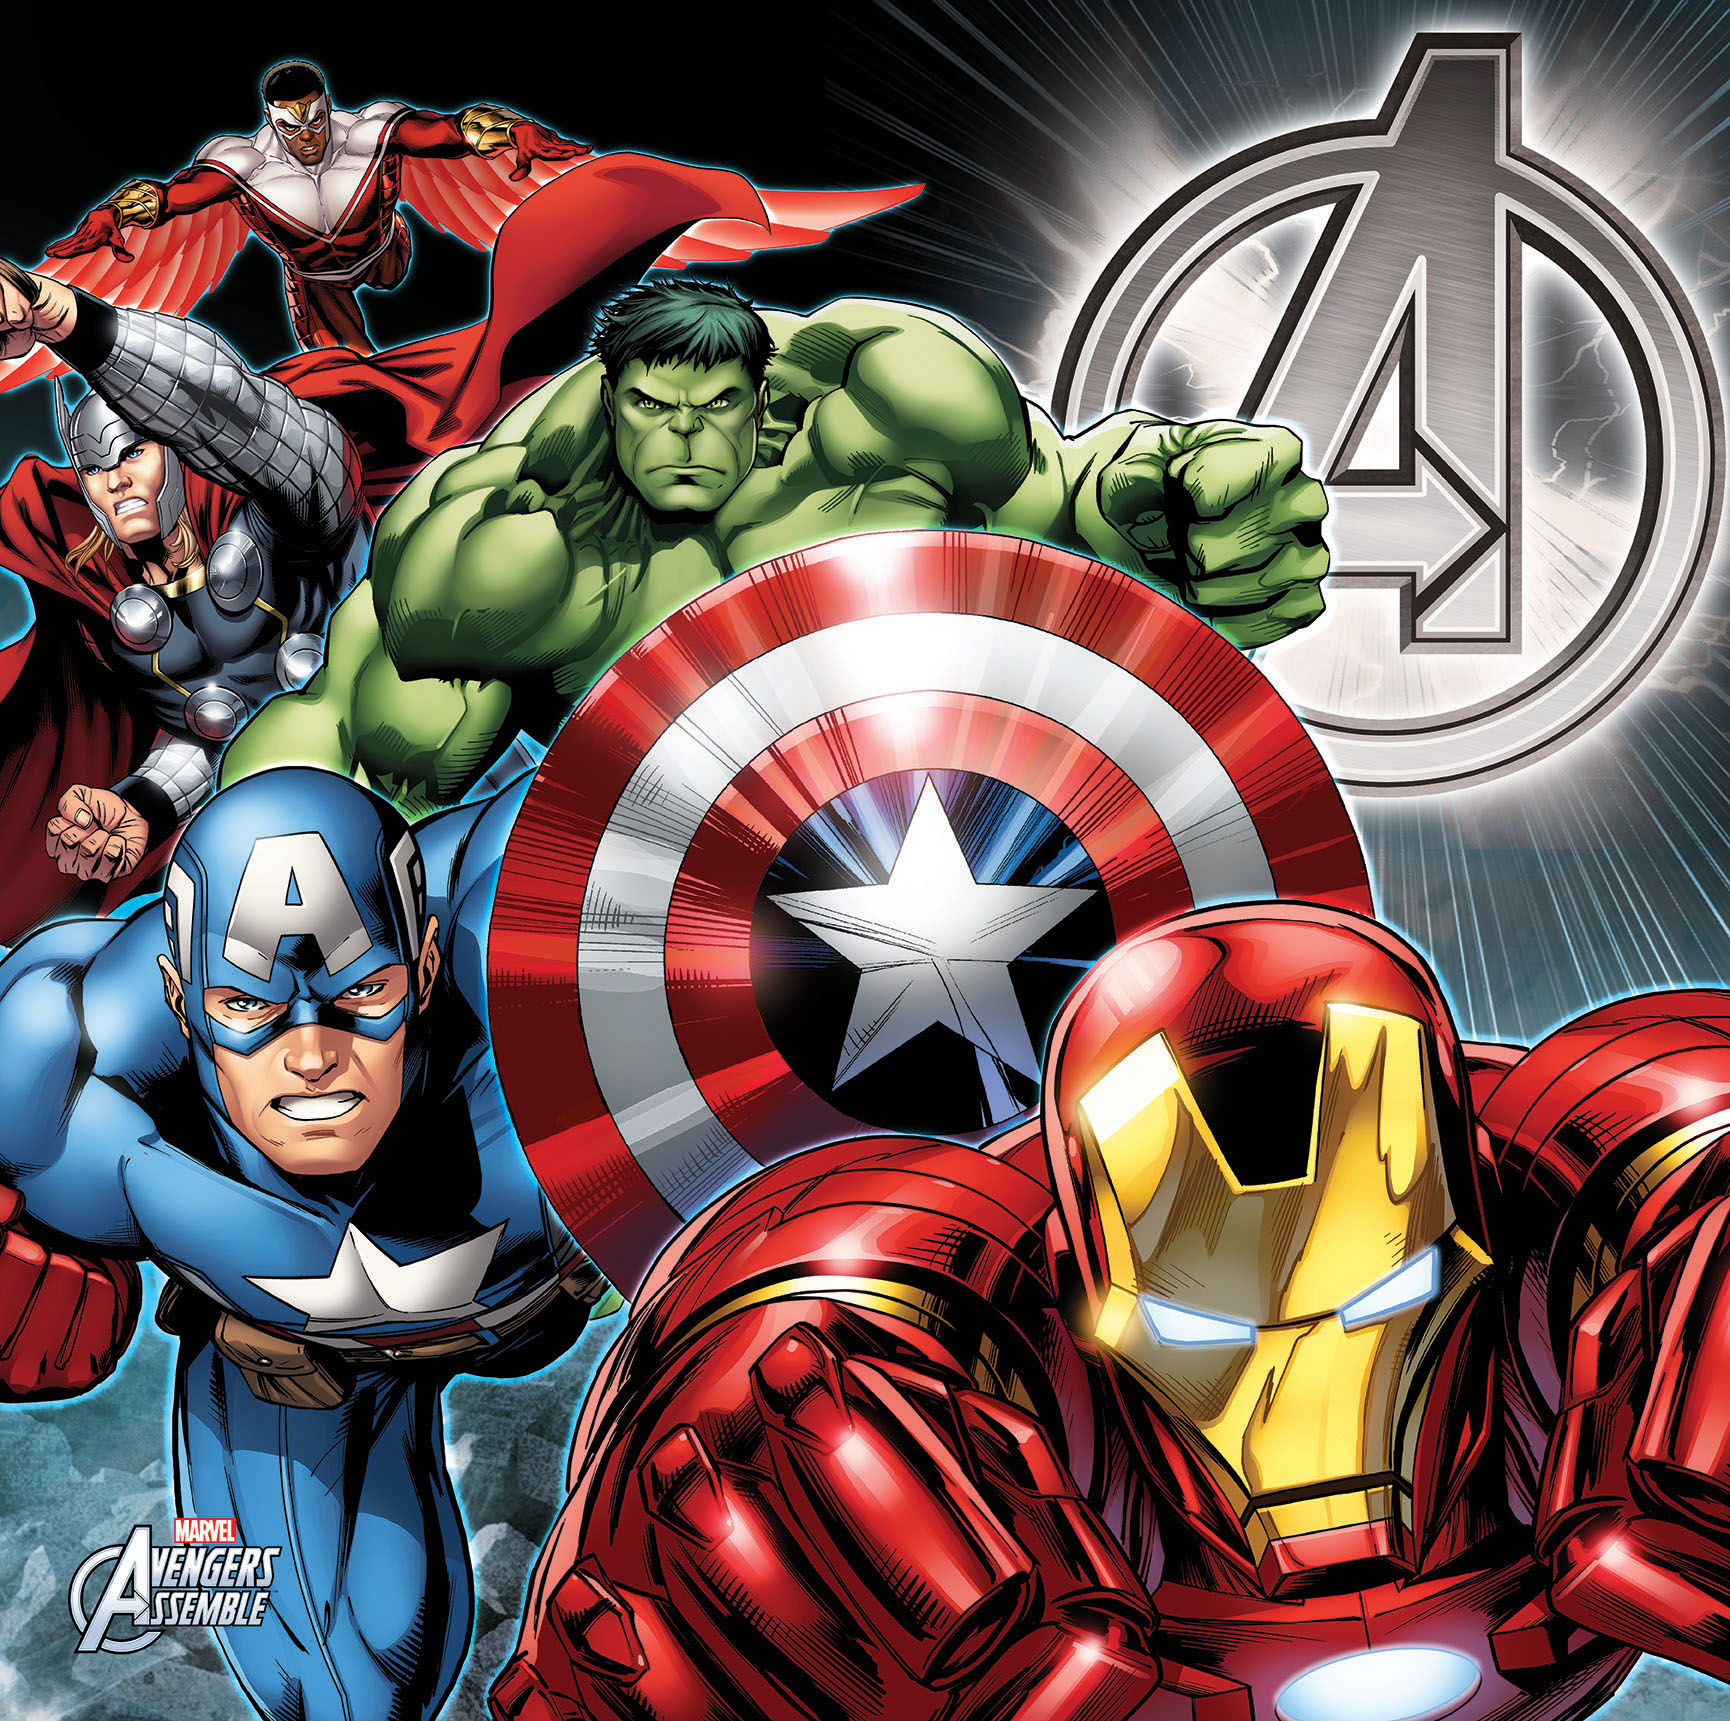 Avengers Group Shot 24x24 PRC09100 2134978 CA.jpg